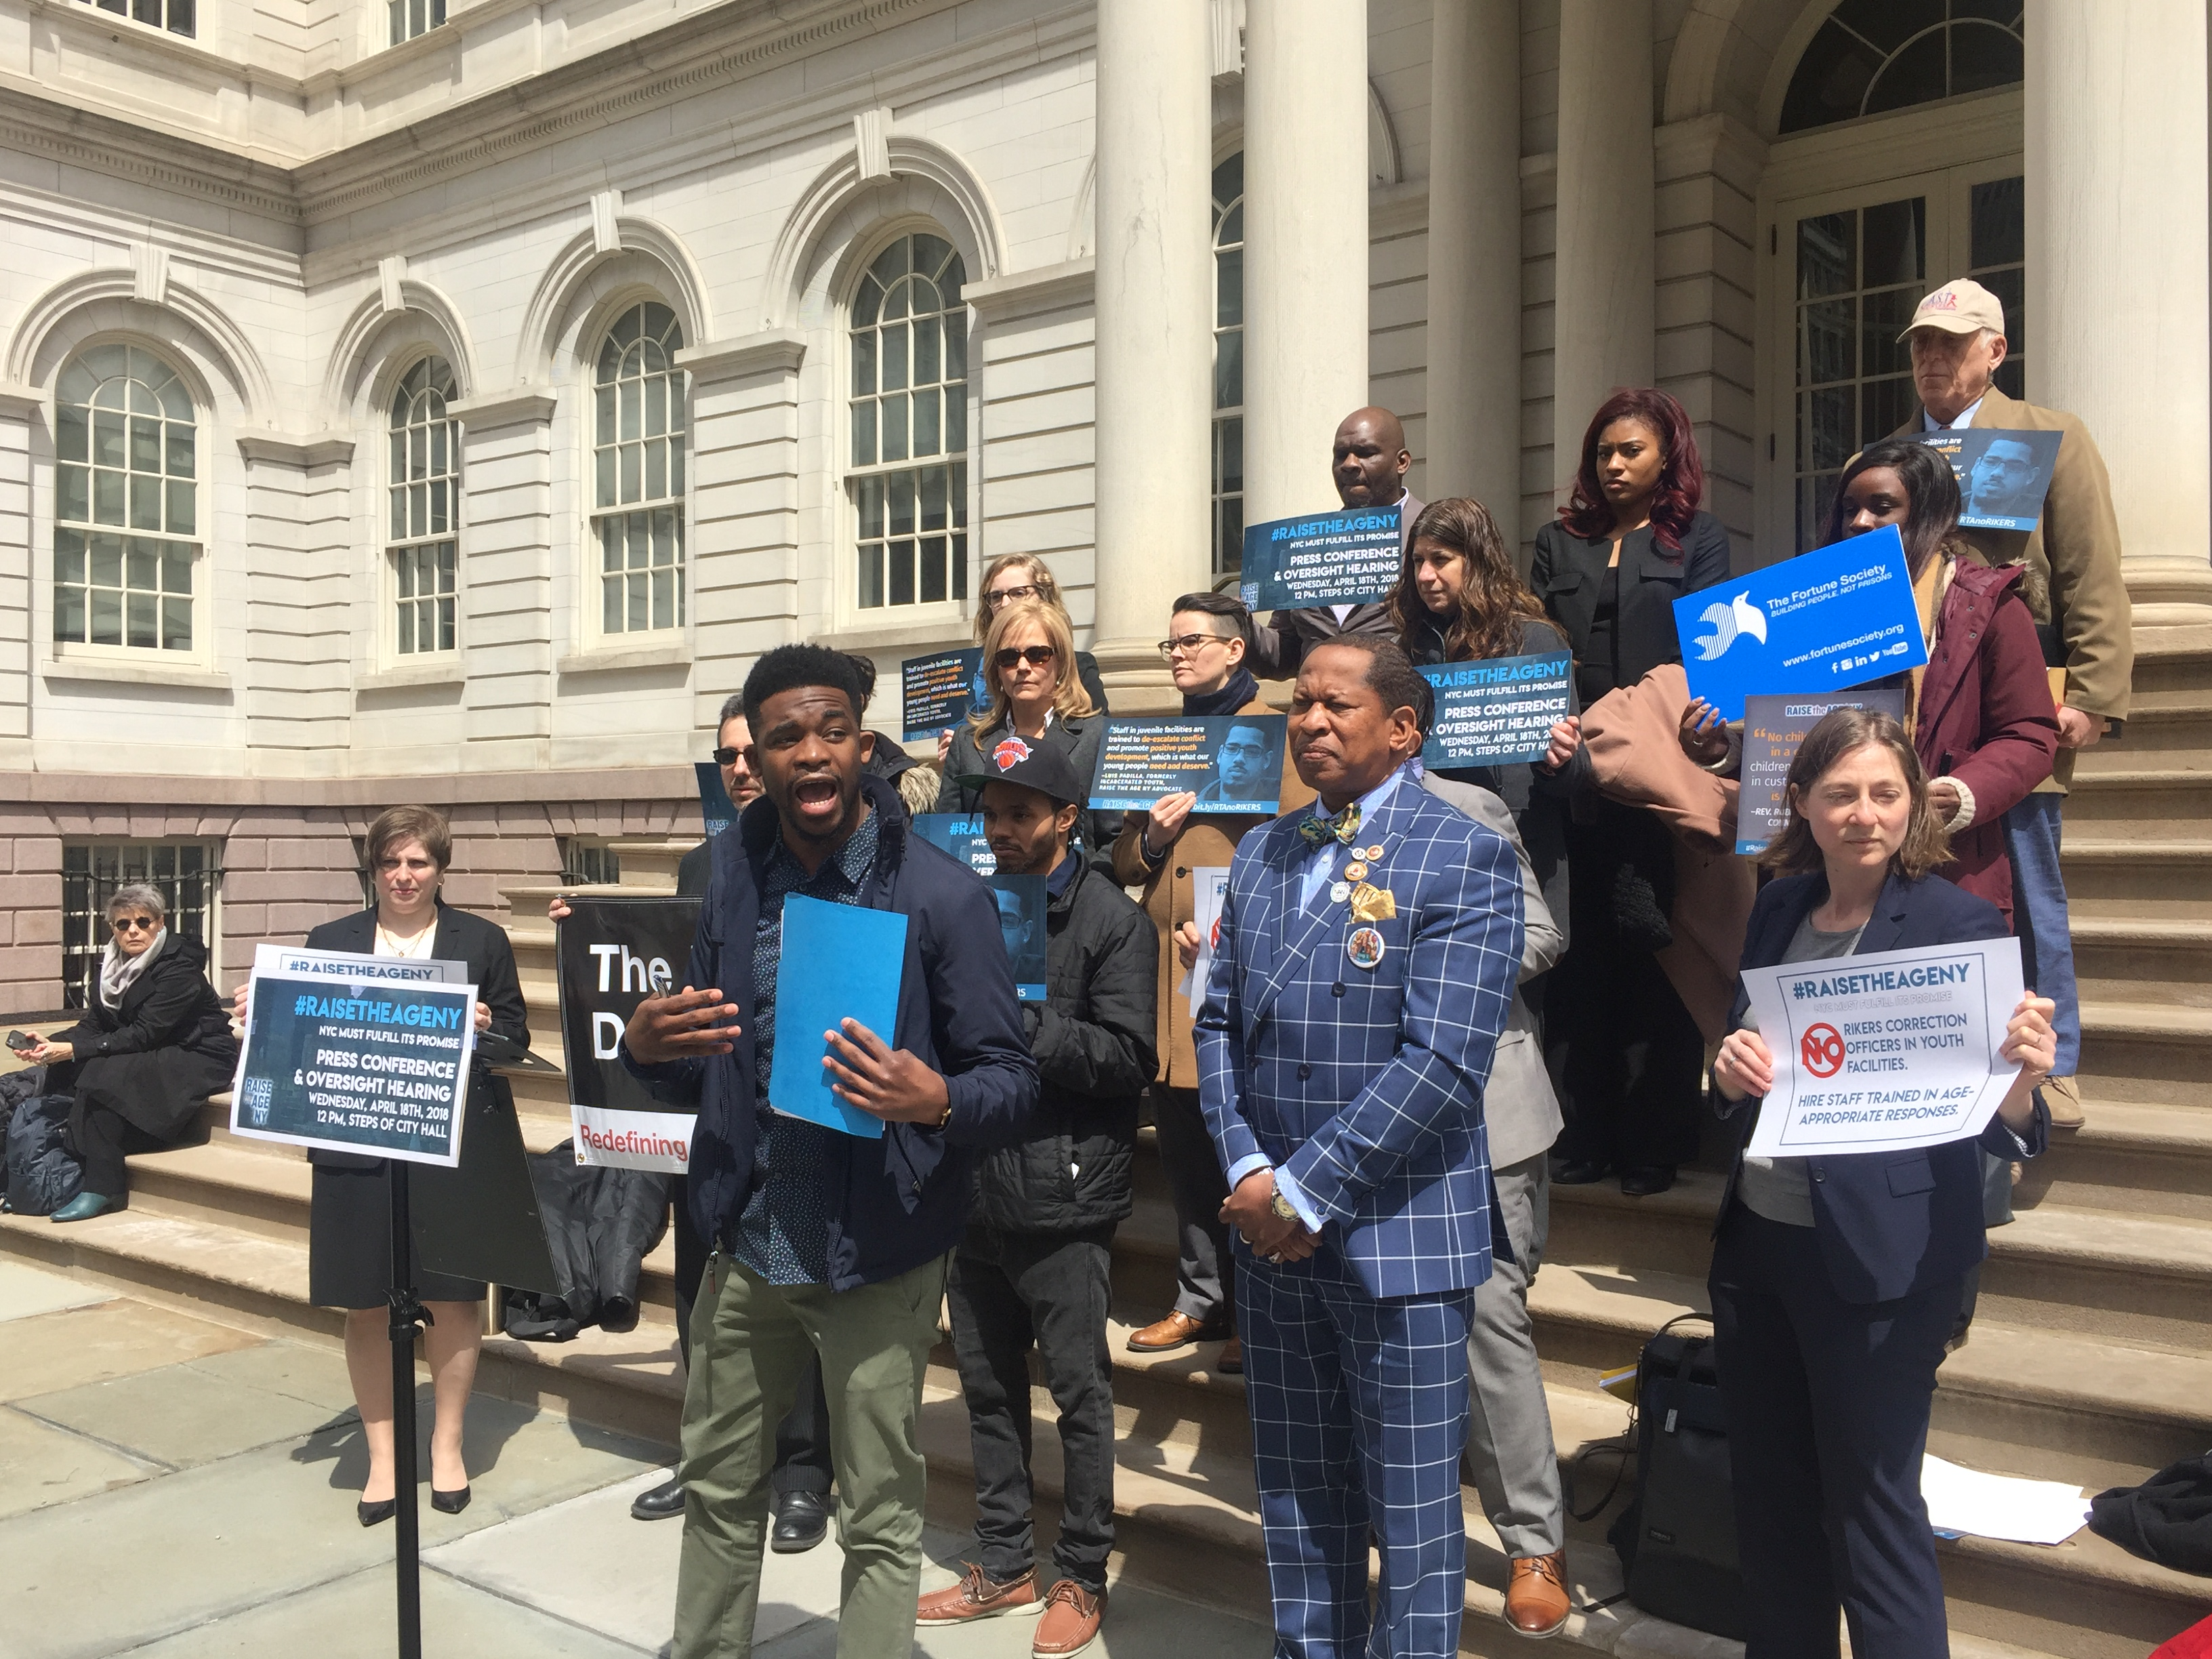 NYC Must Improve Juvenile Justice Conditions